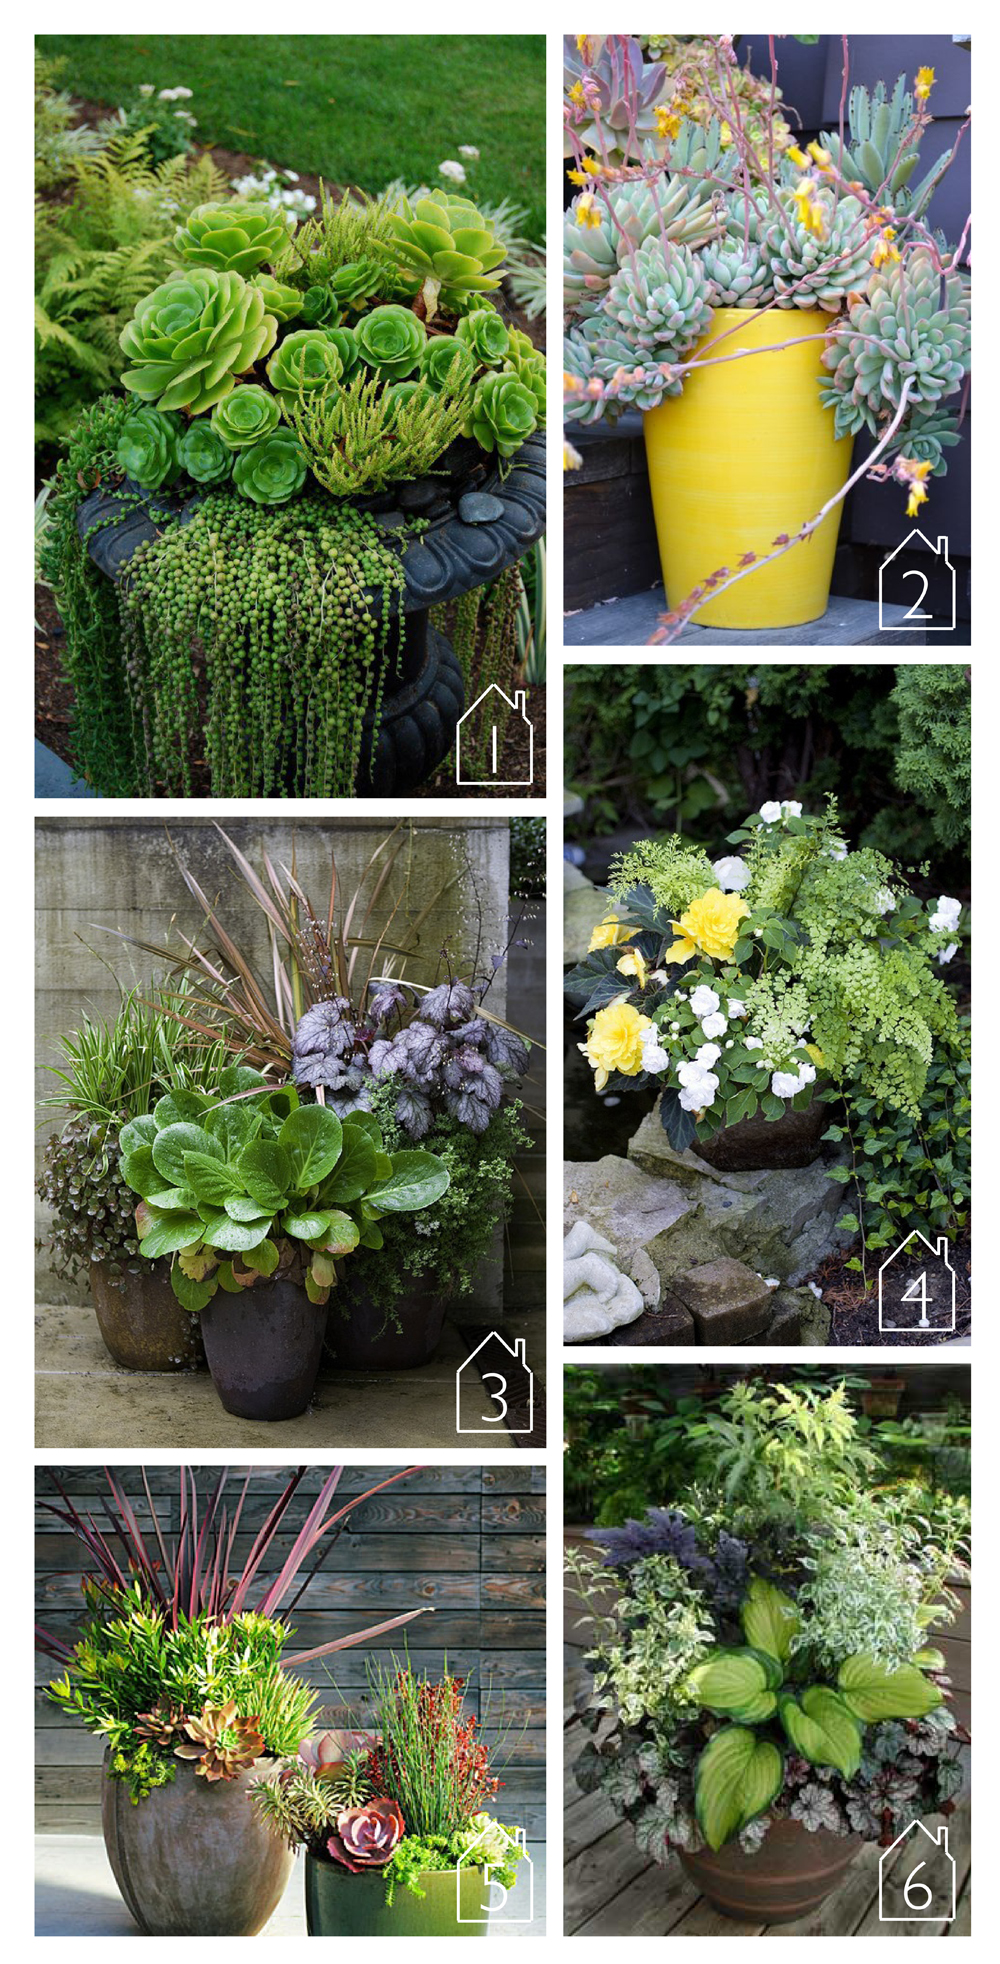 1. Urn with chicks, hens and pearls via  ABC das Suculentas   2. Yellow echeveria flowers with succulents via  Potted  3. This collection of perennials via  Houzz  4. Shade container via  Gorgeous Flowers, Garden and Love  5. These plum-colored foliage arrangements via  Sunset  6. Hosta Container via  Shady Oaks